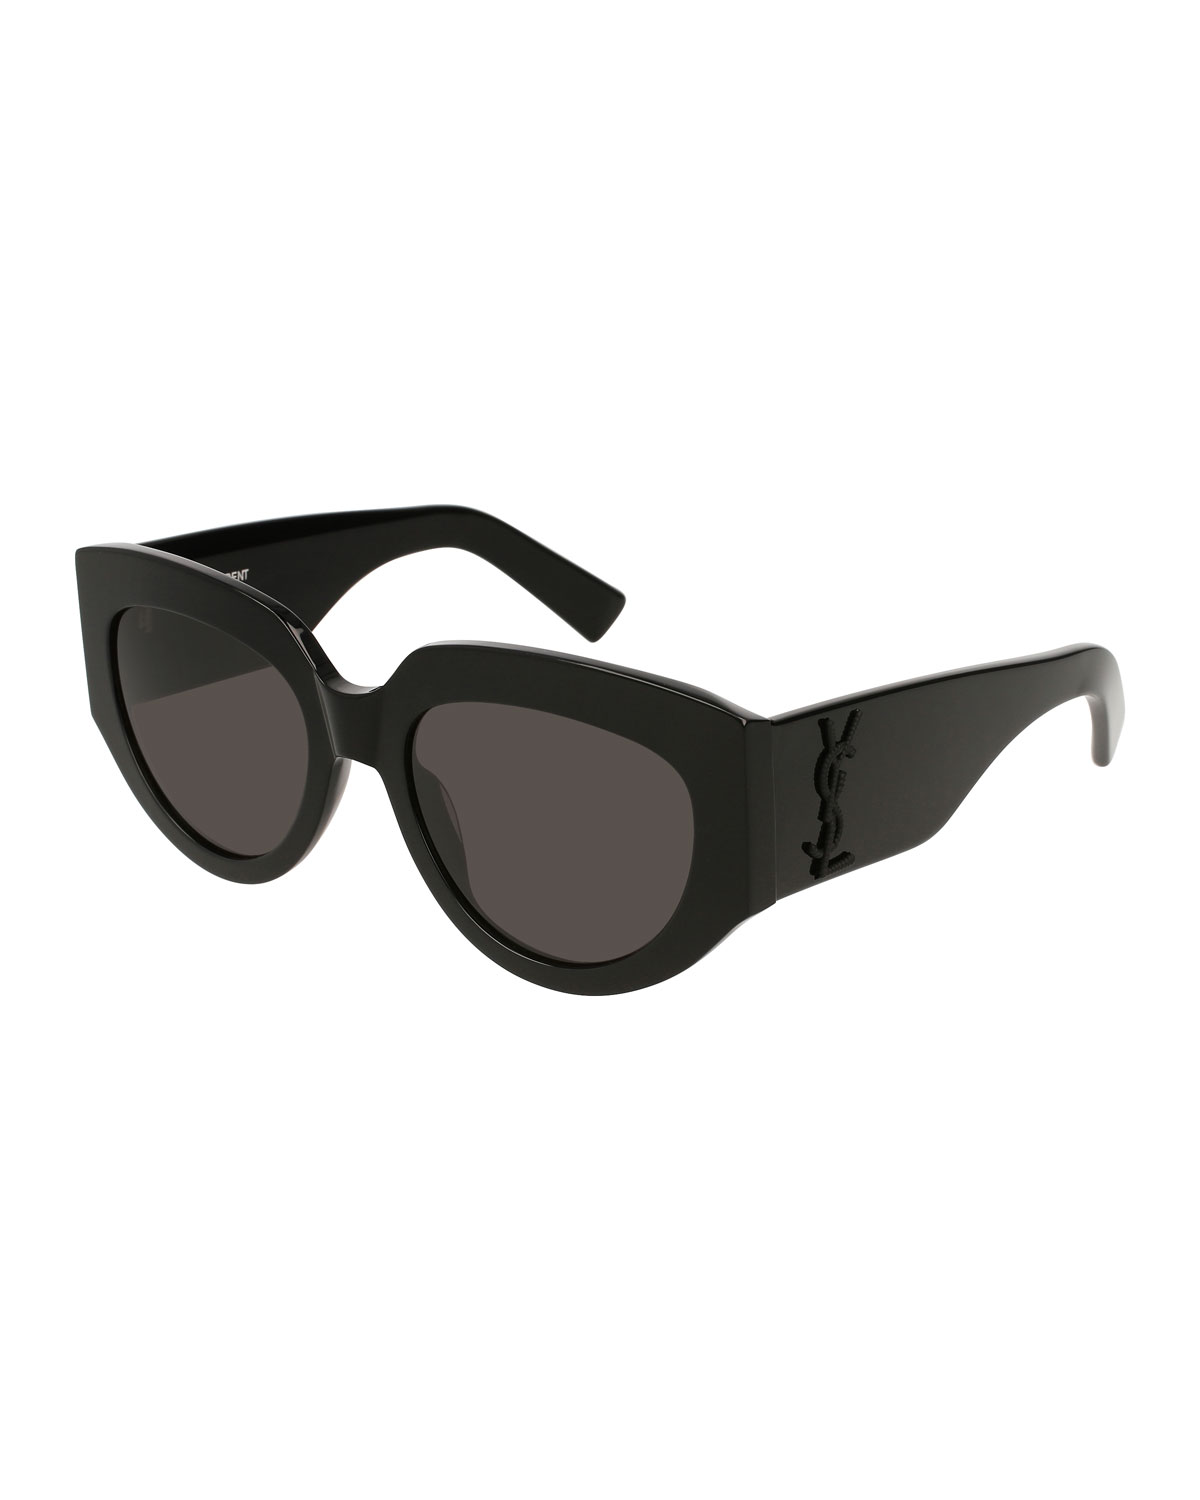 c25a805812d Saint Laurent Cat-Eye Acetate Sunglasses w/ YSL Pin, Black | Neiman ...